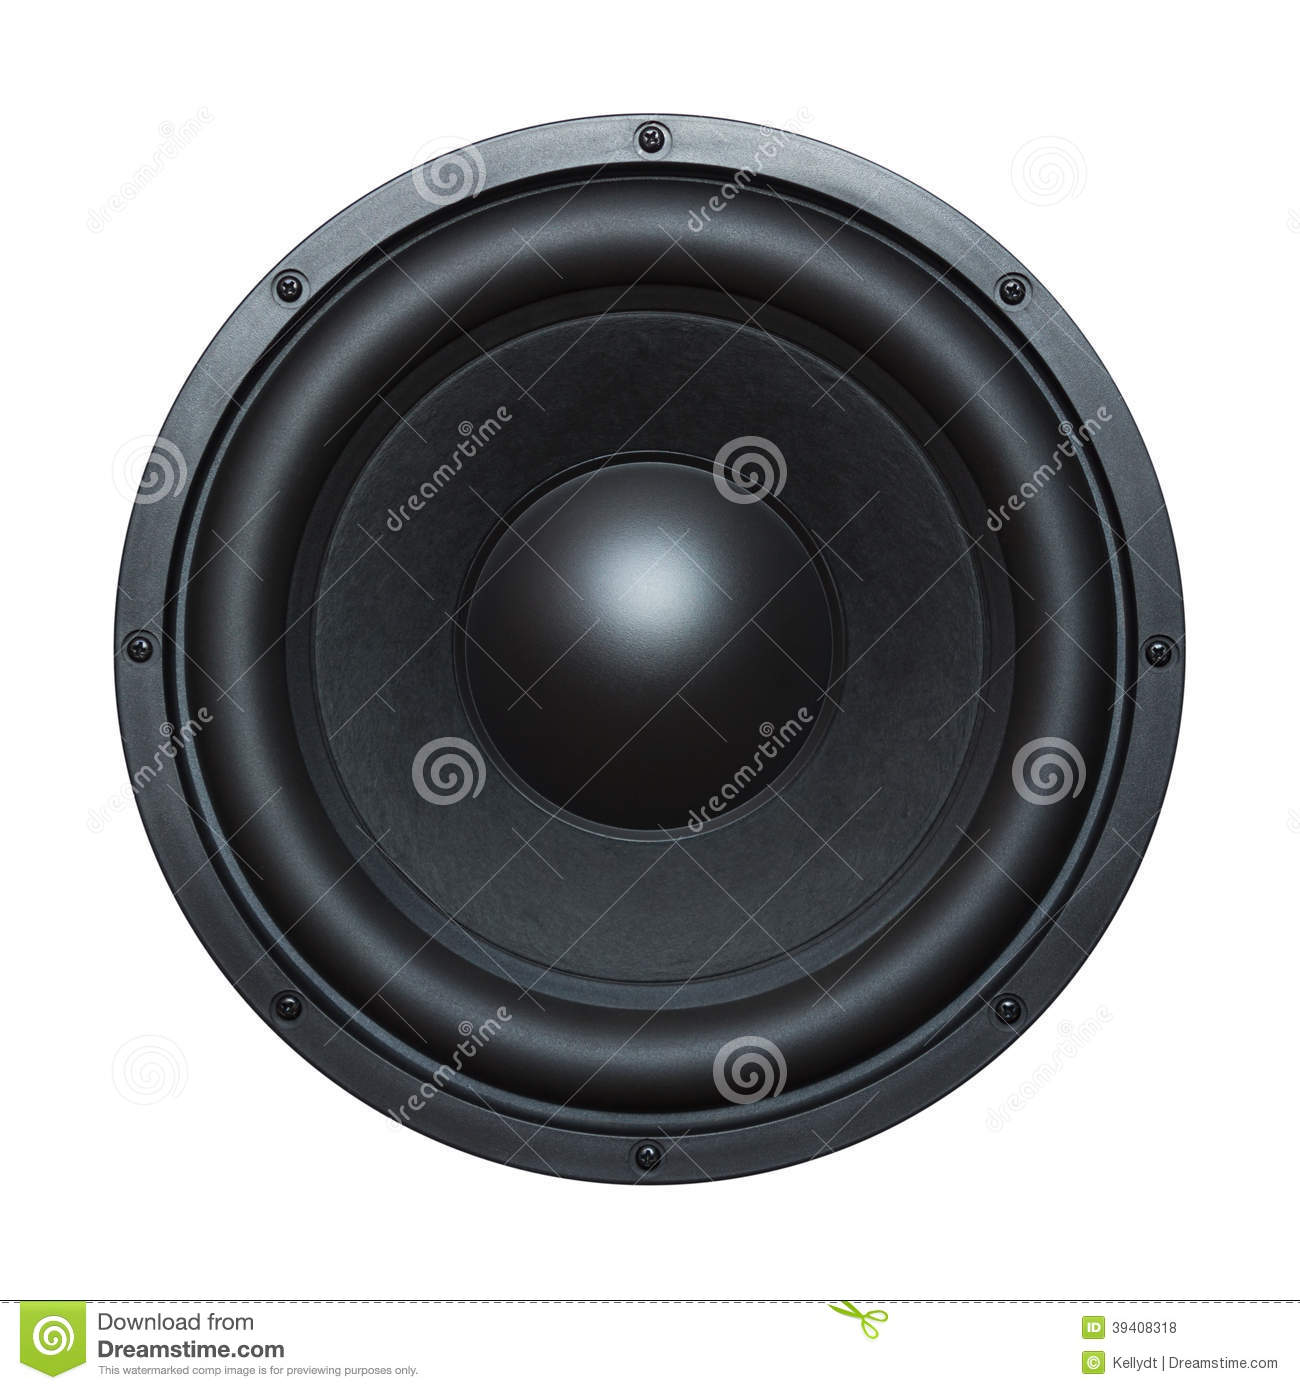 Speaker Bass Driver Stock Photo - Image: 39408318